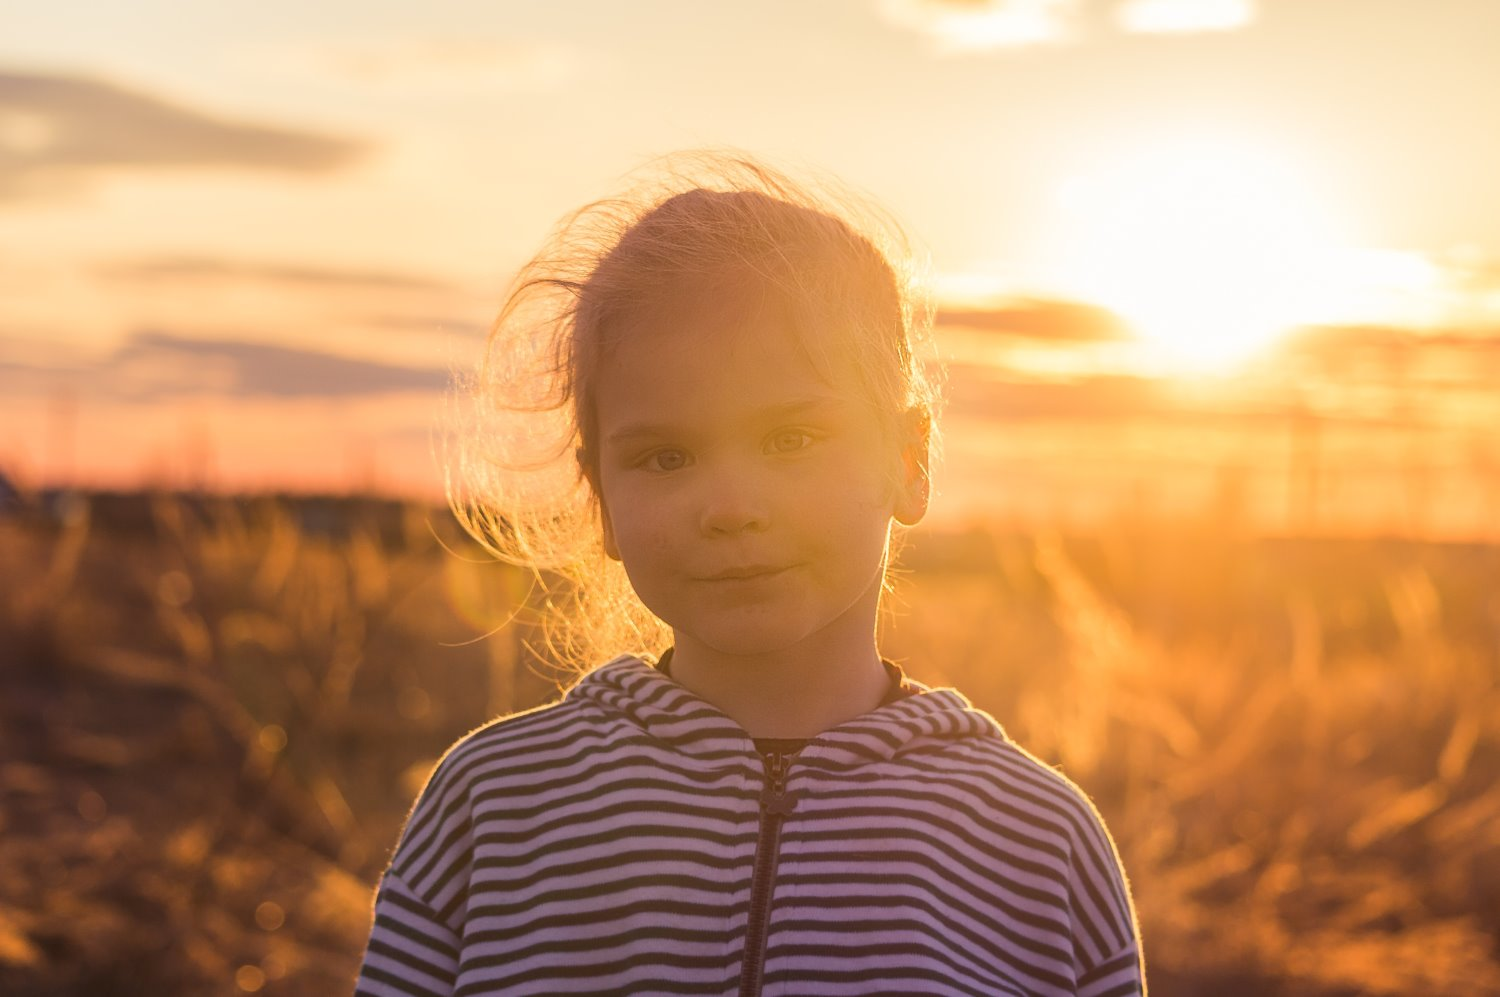 shooting portraits in bright sunshine